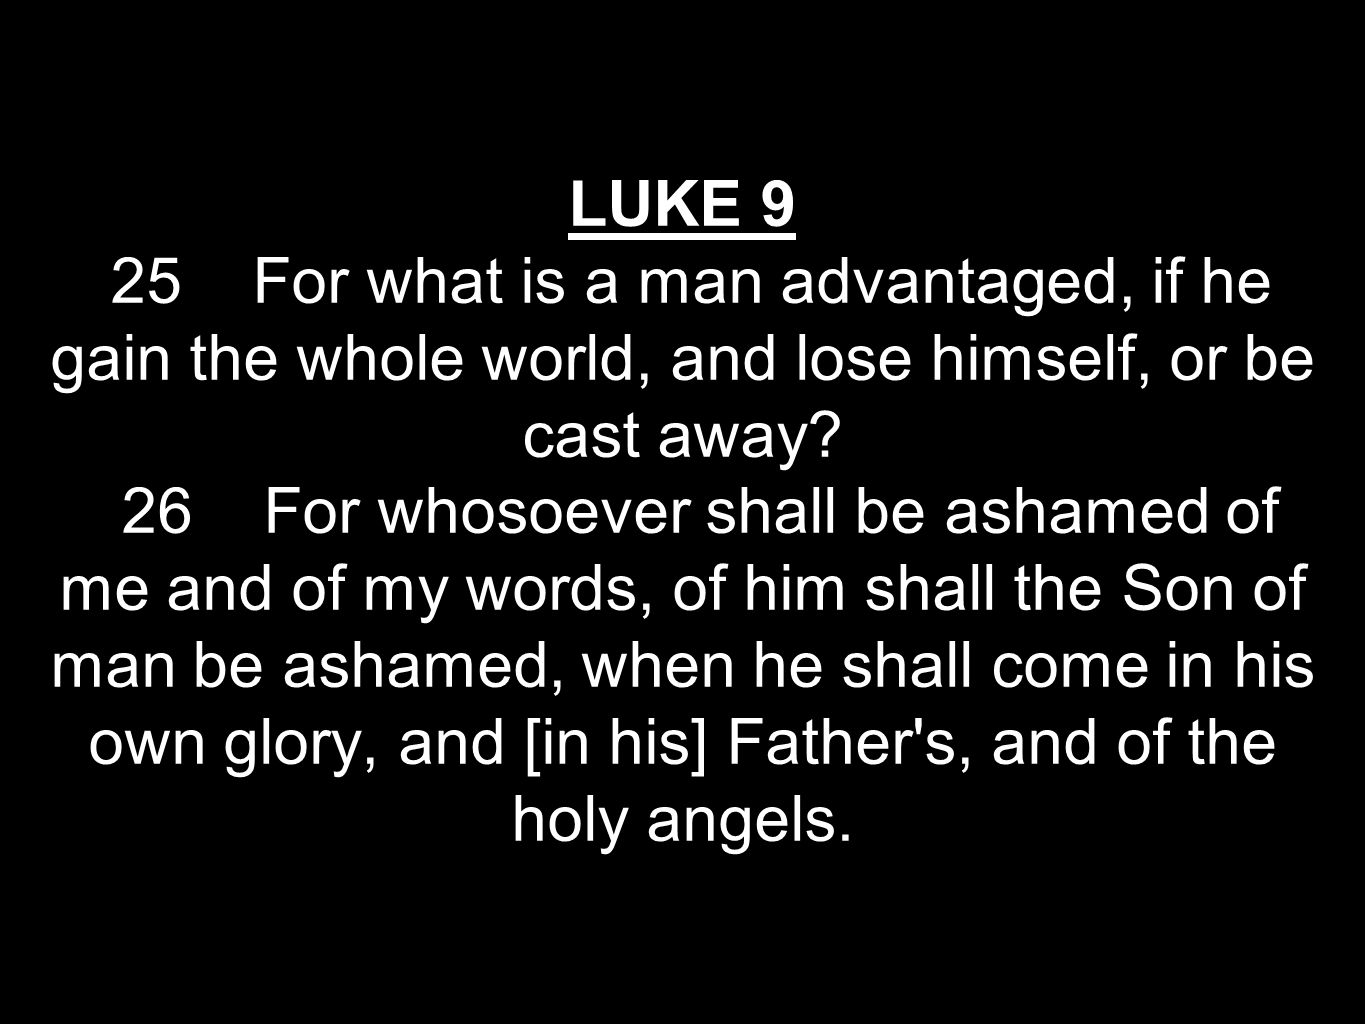 LUKE 9 25 For what is a man advantaged, if he gain the whole world, and lose himself, or be cast away.